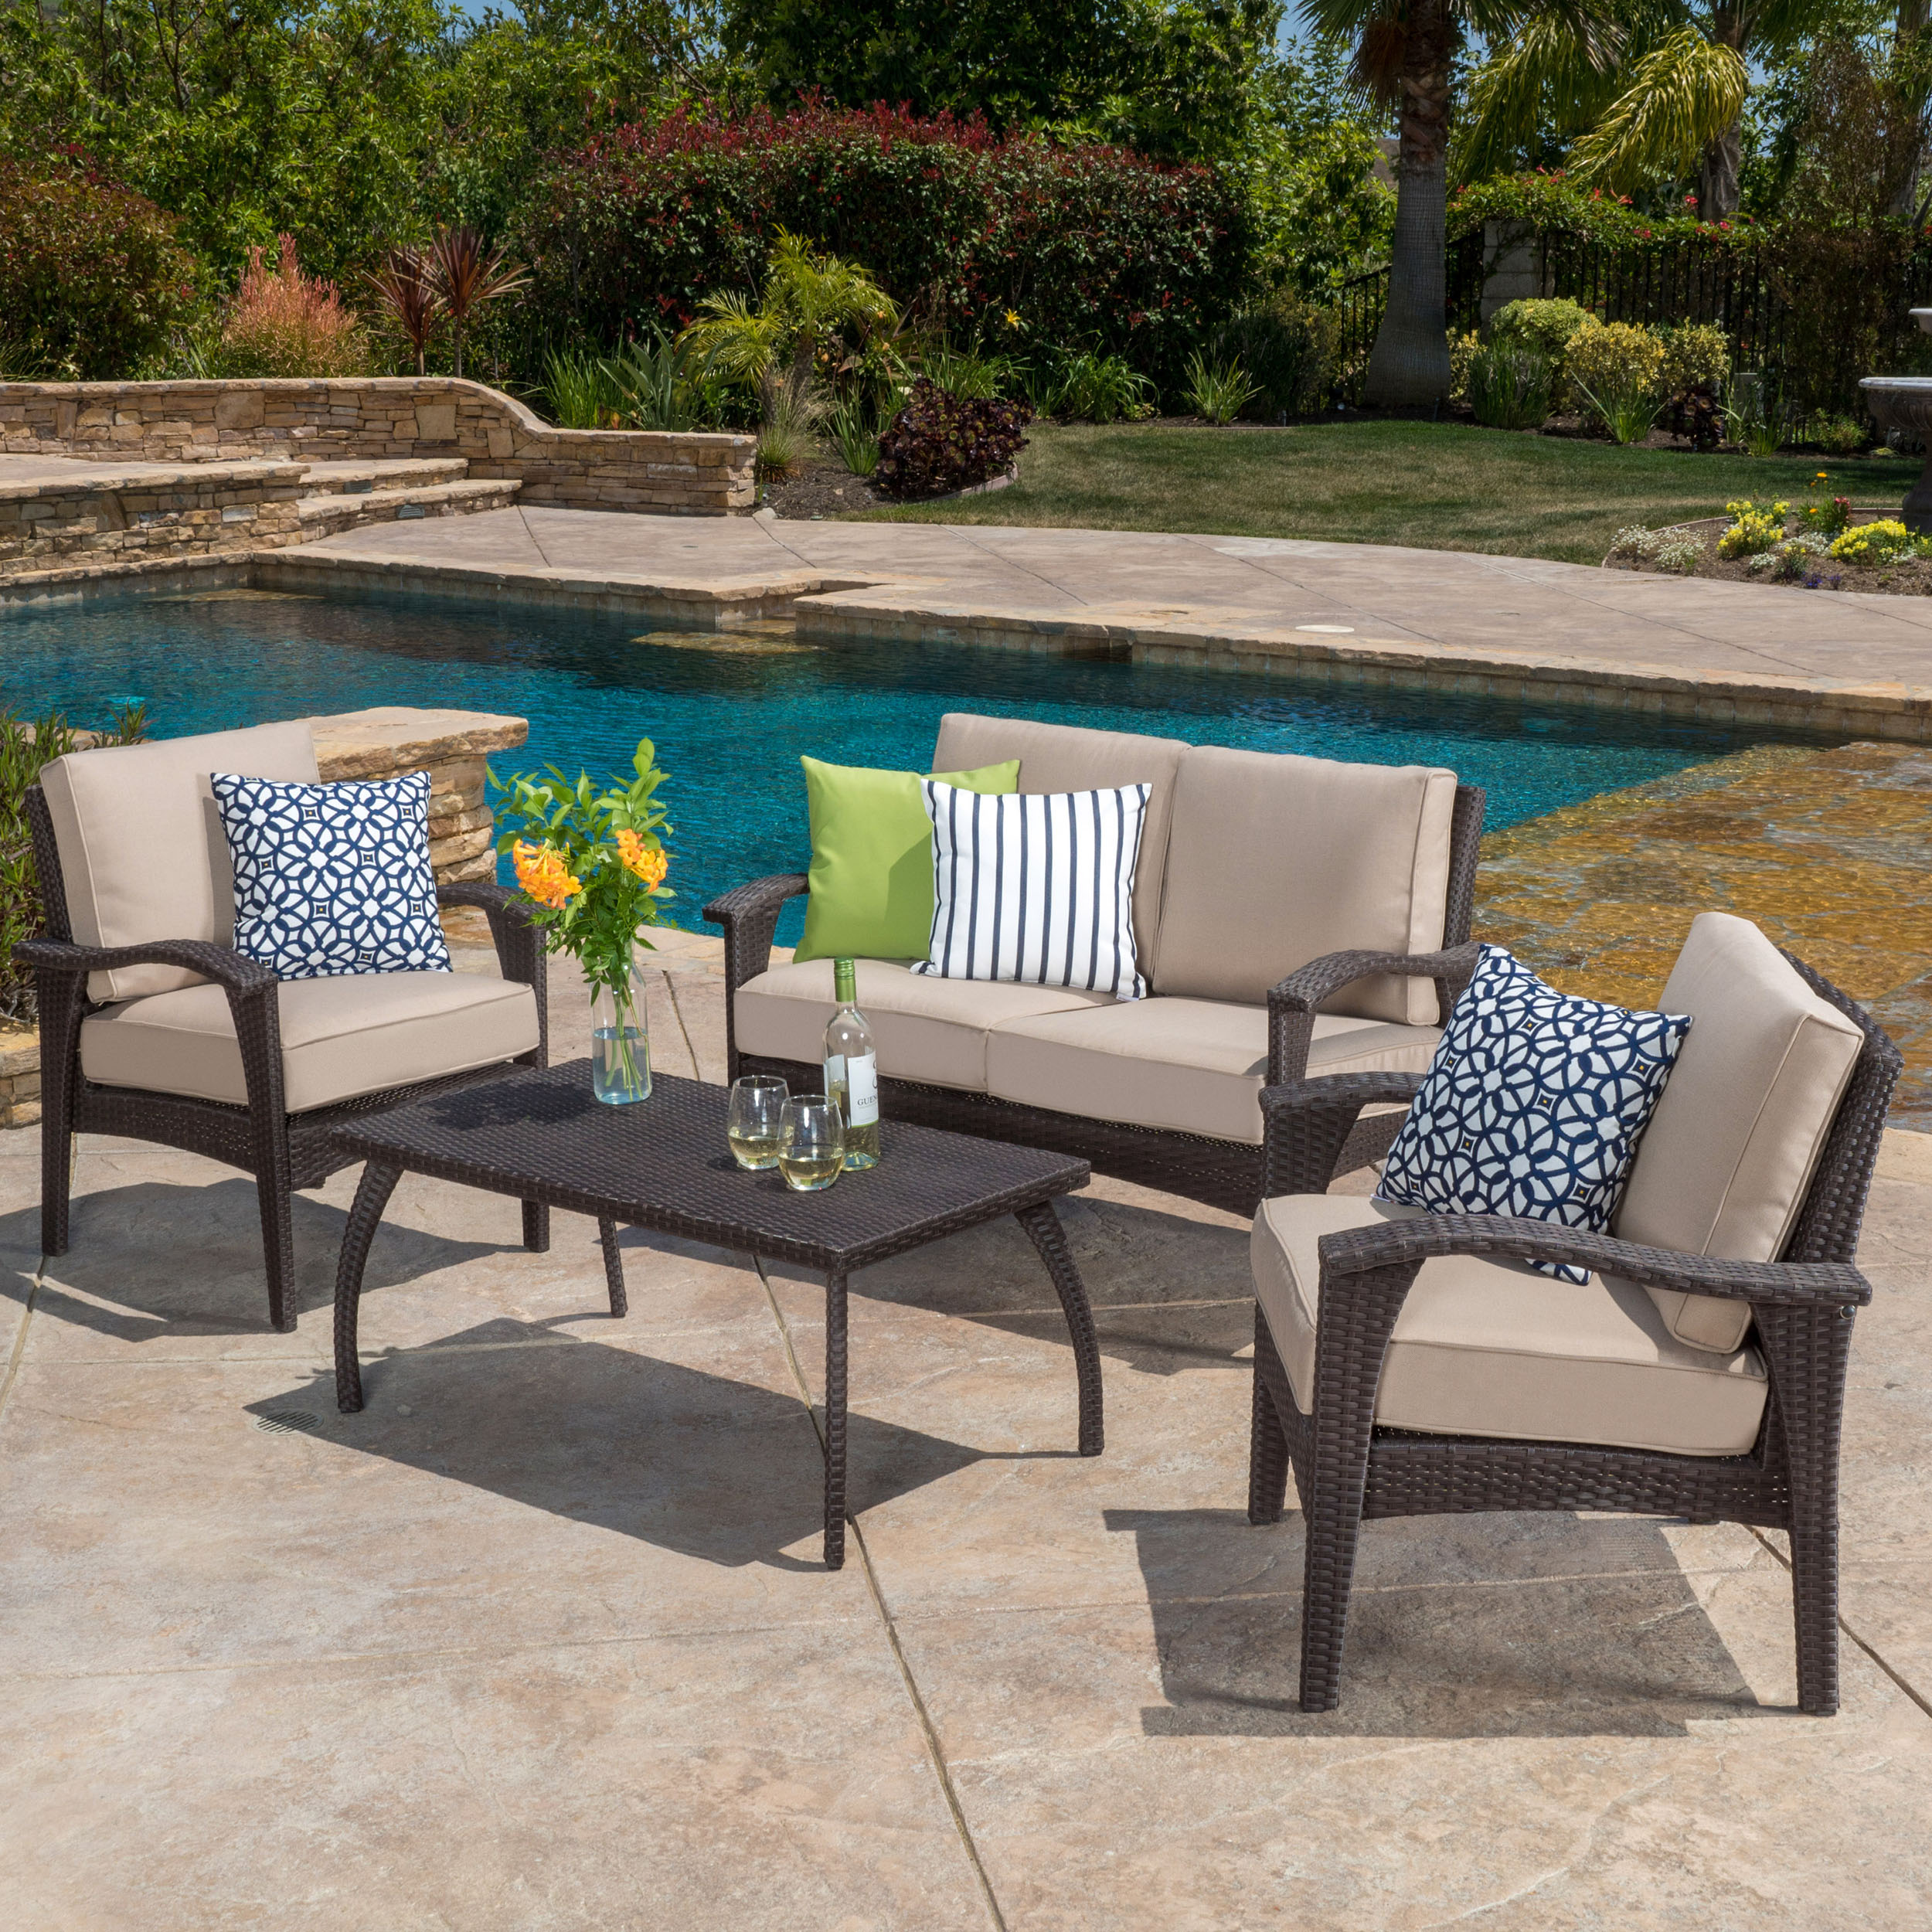 Becka Outdoor 4-piece Brown Wicker Seating Set and Cushions by GDF Studio